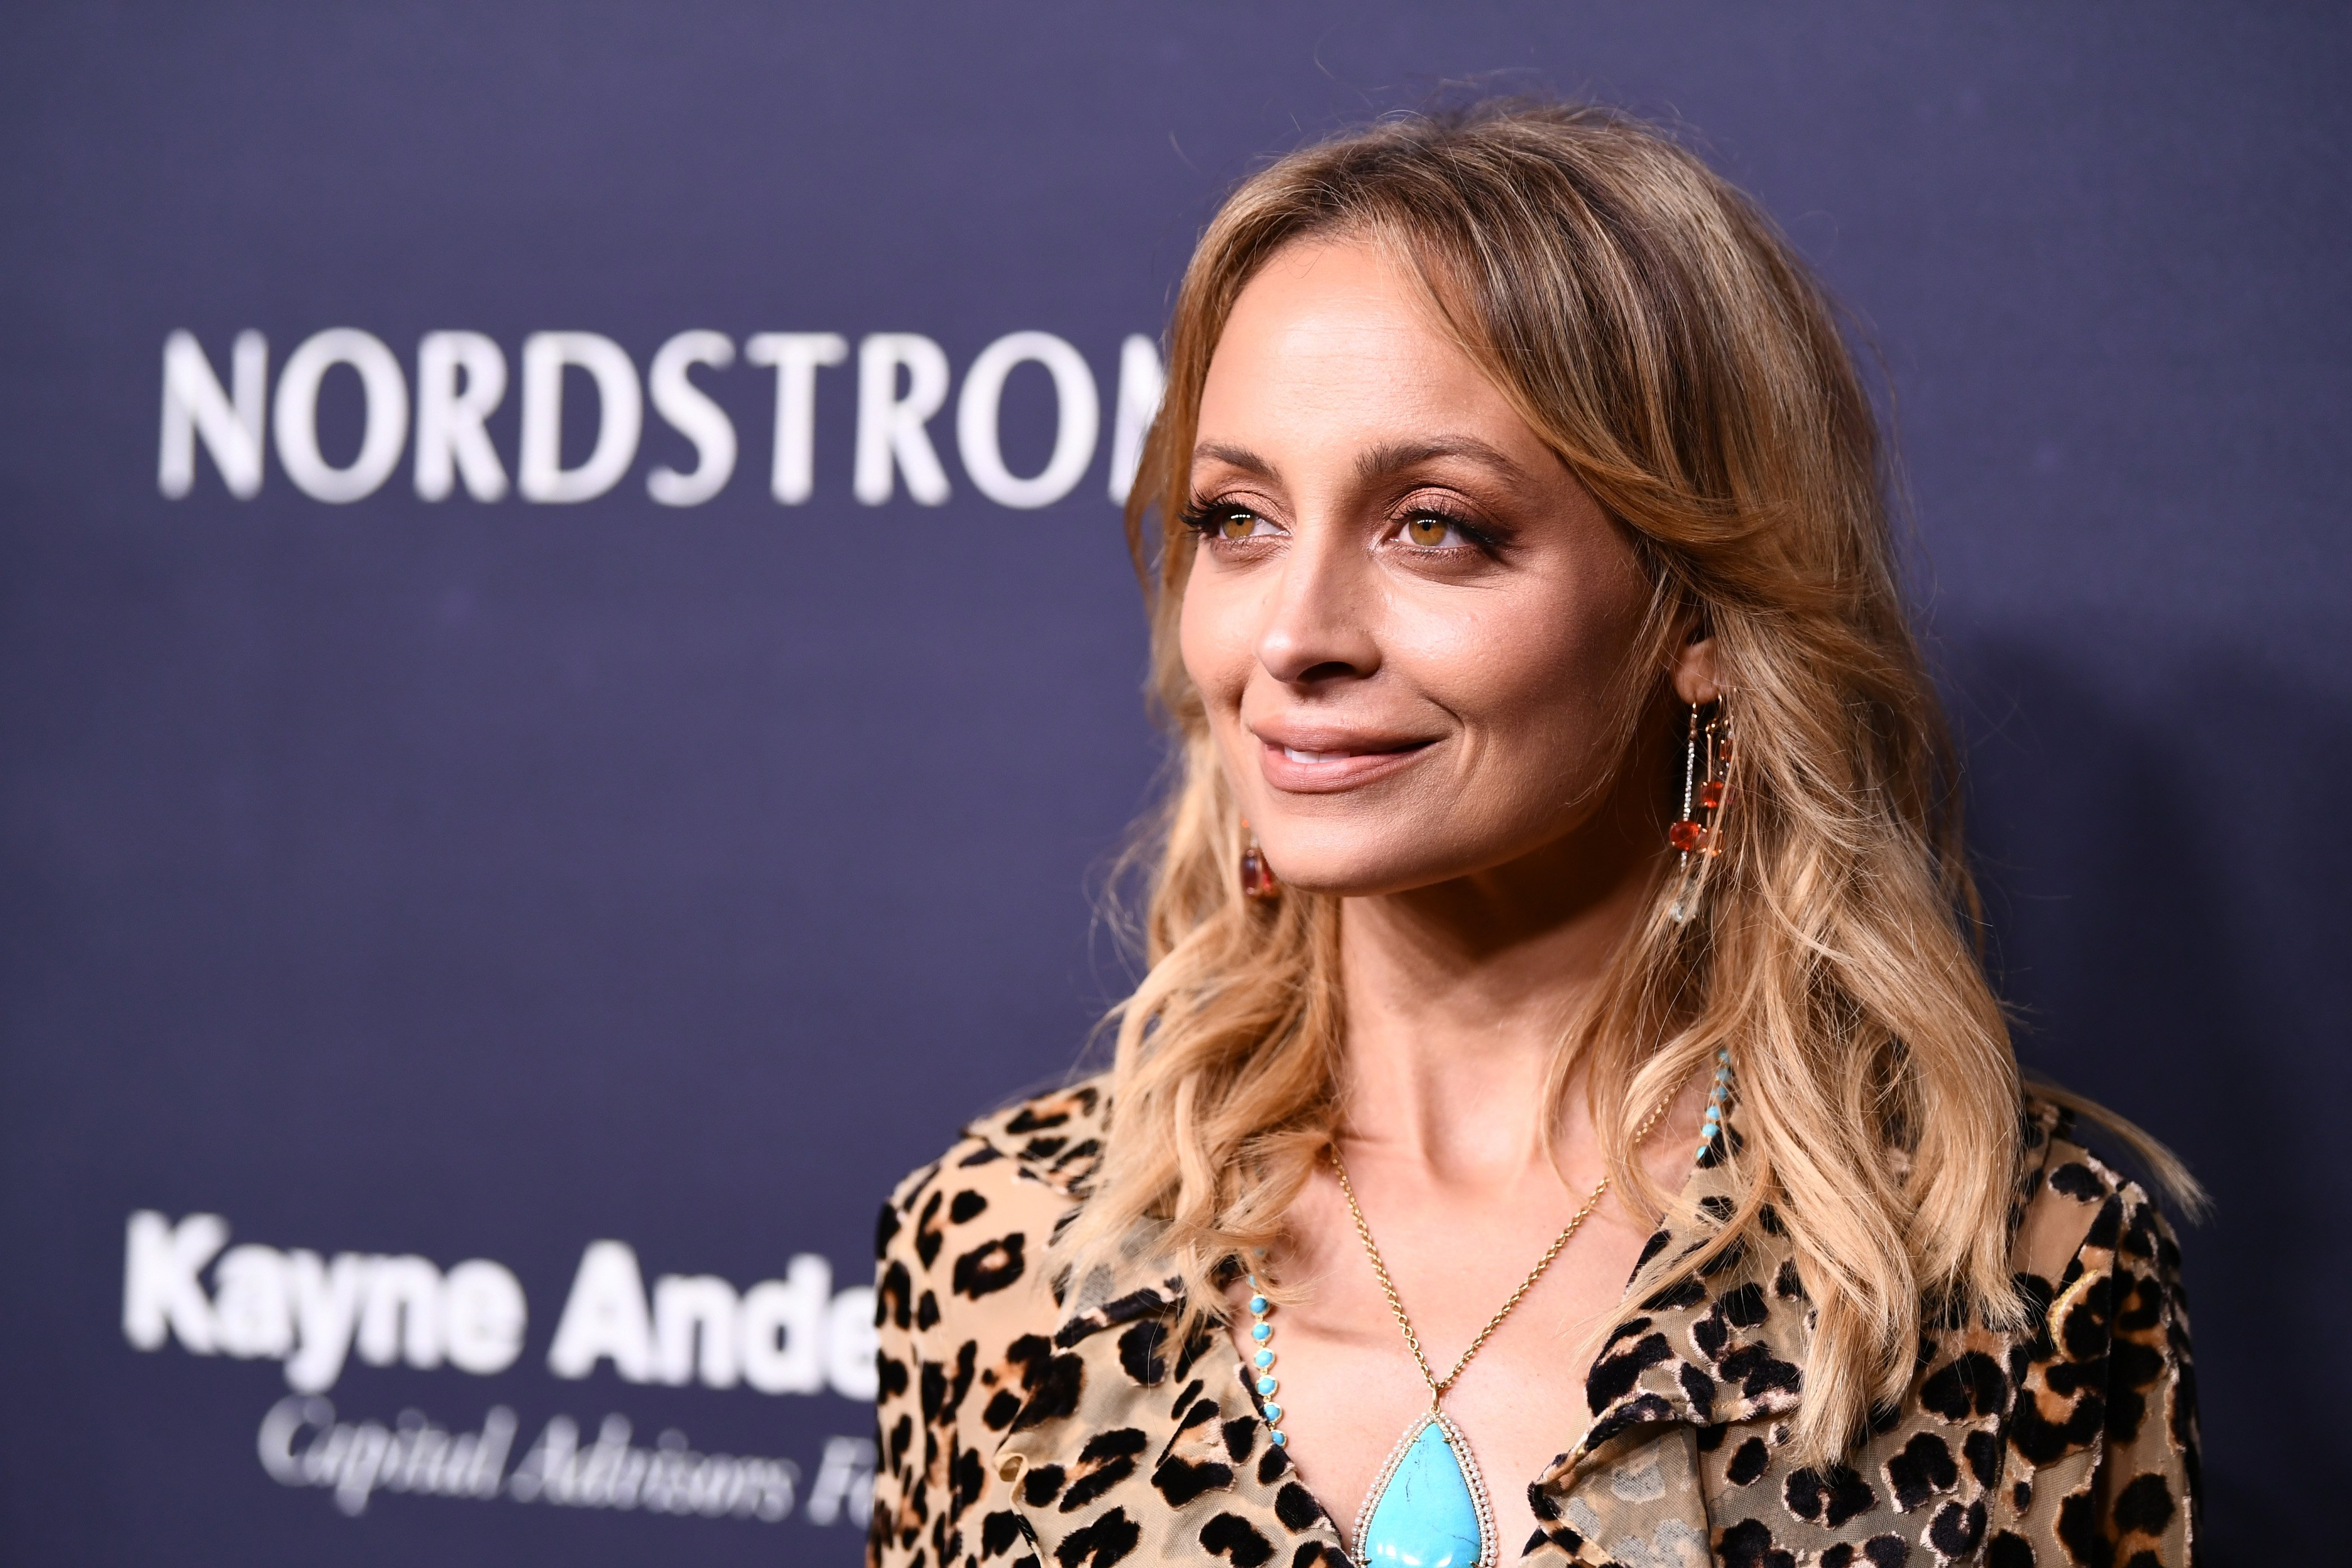 Nicole Richie attends the 2017 Baby2Baby Gala at 3LABS on November 11, 2017 in Culver City, California. | Photo: GettyImages